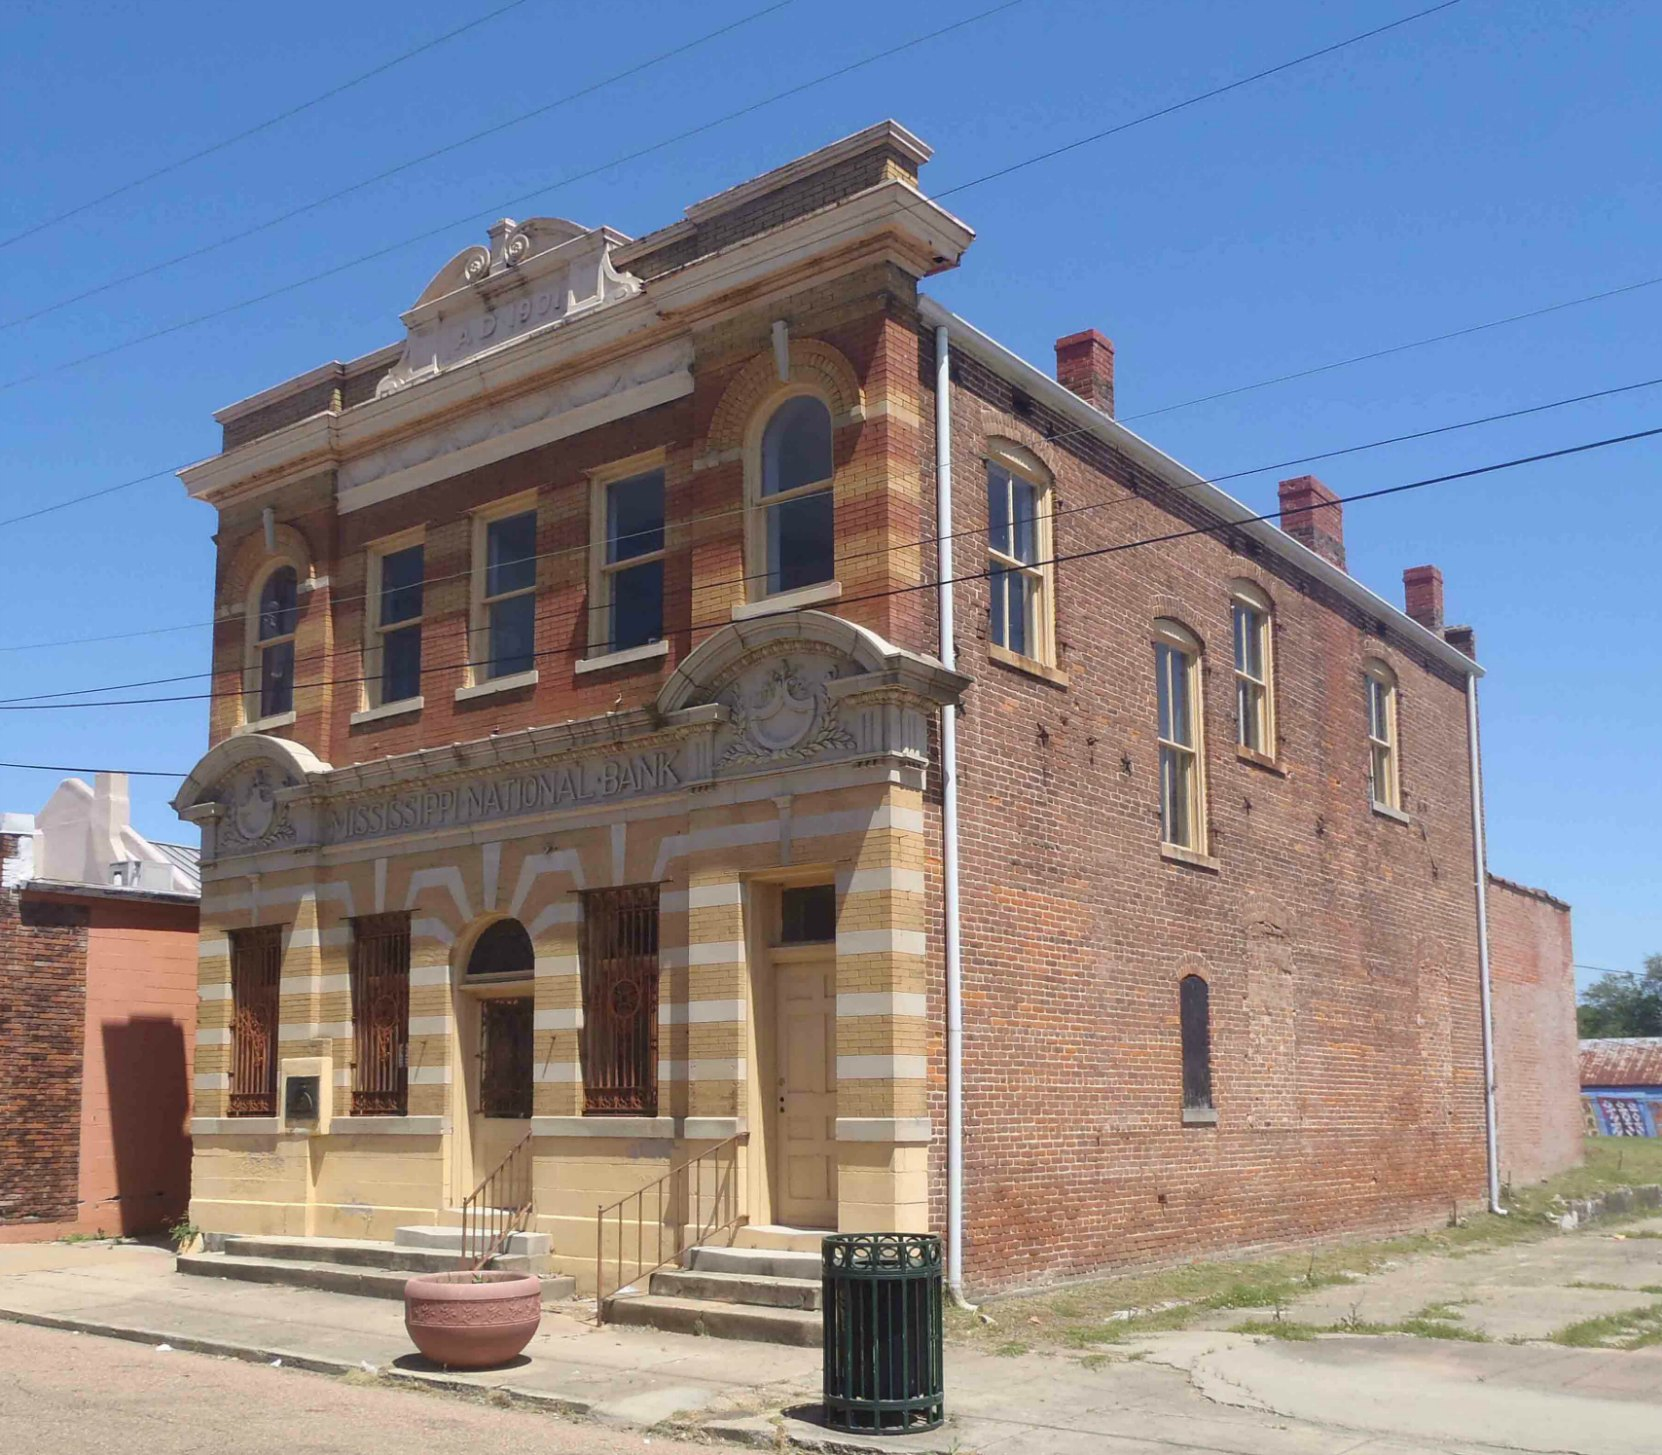 Mississippi National Bank building, built circa 1901. Part of the Bernheimer Complex, Port Gibson, Missisippi